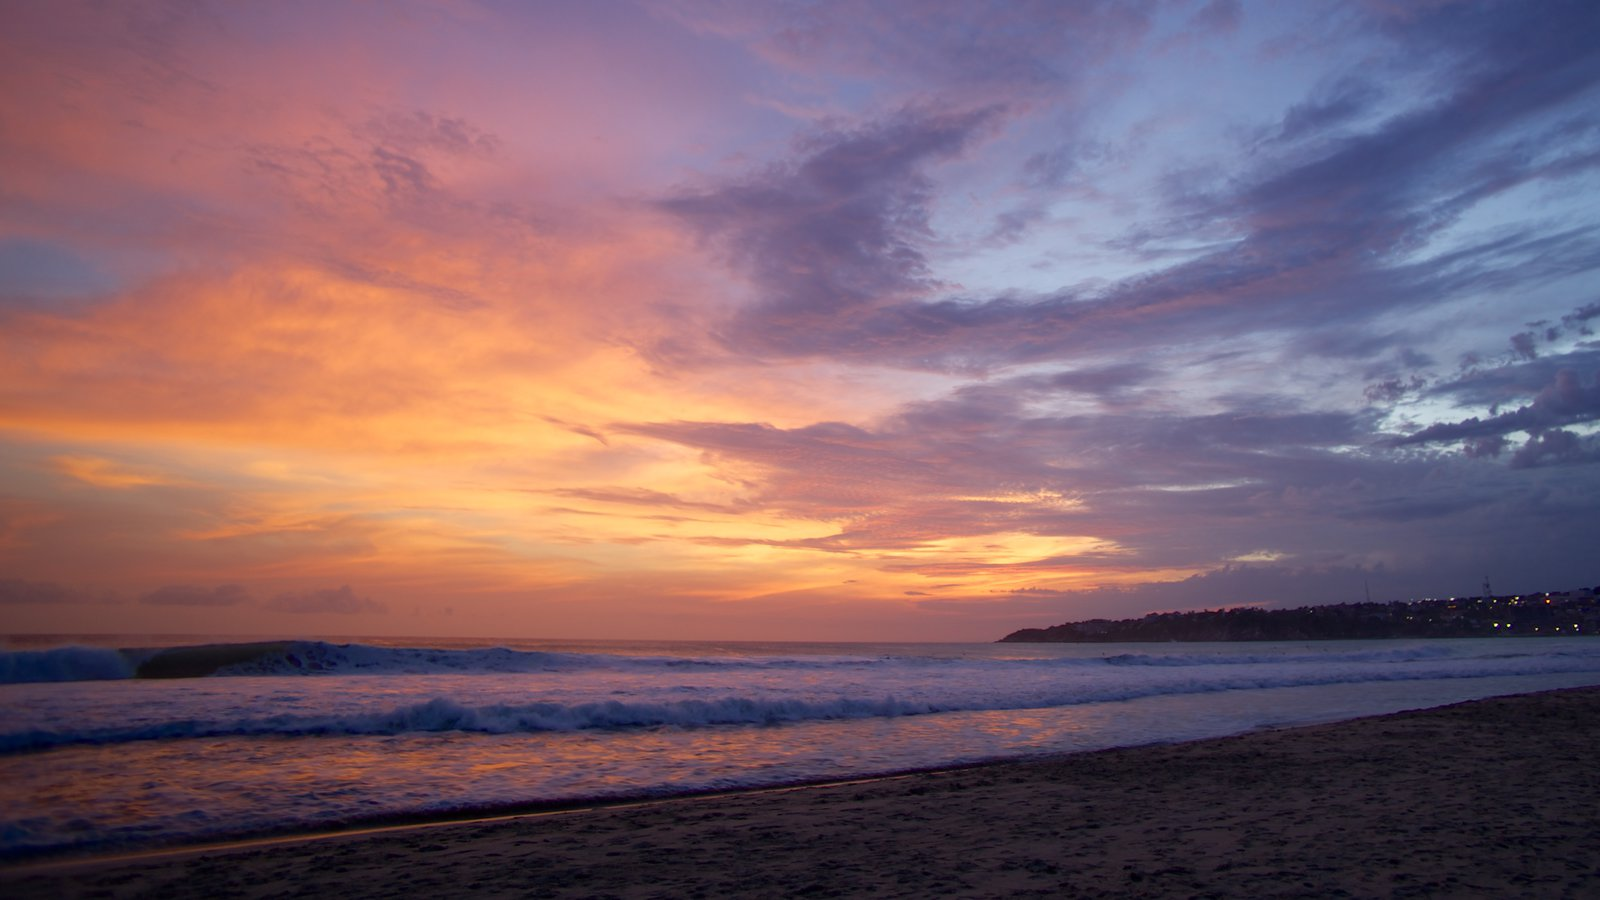 Puerto Escondido showing a sunset and a beach